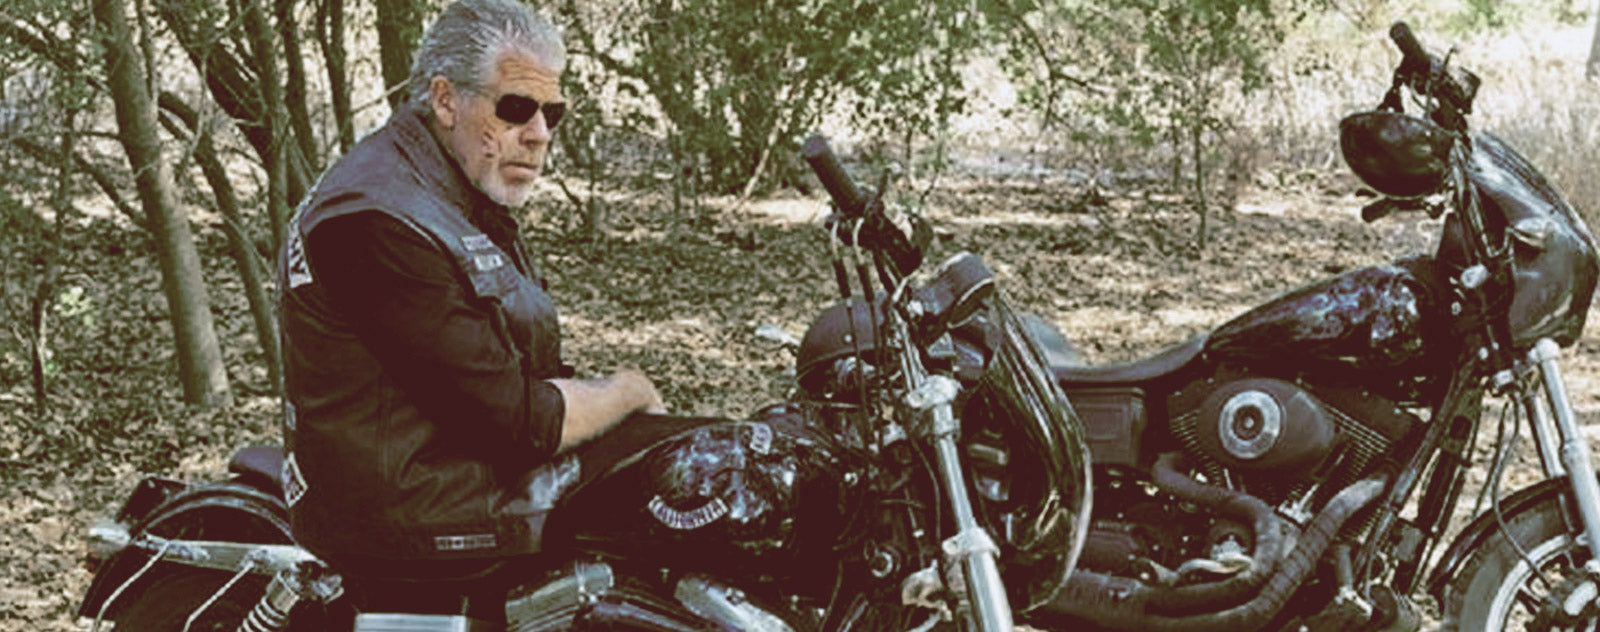 Moto Clay Sons of Anarchy